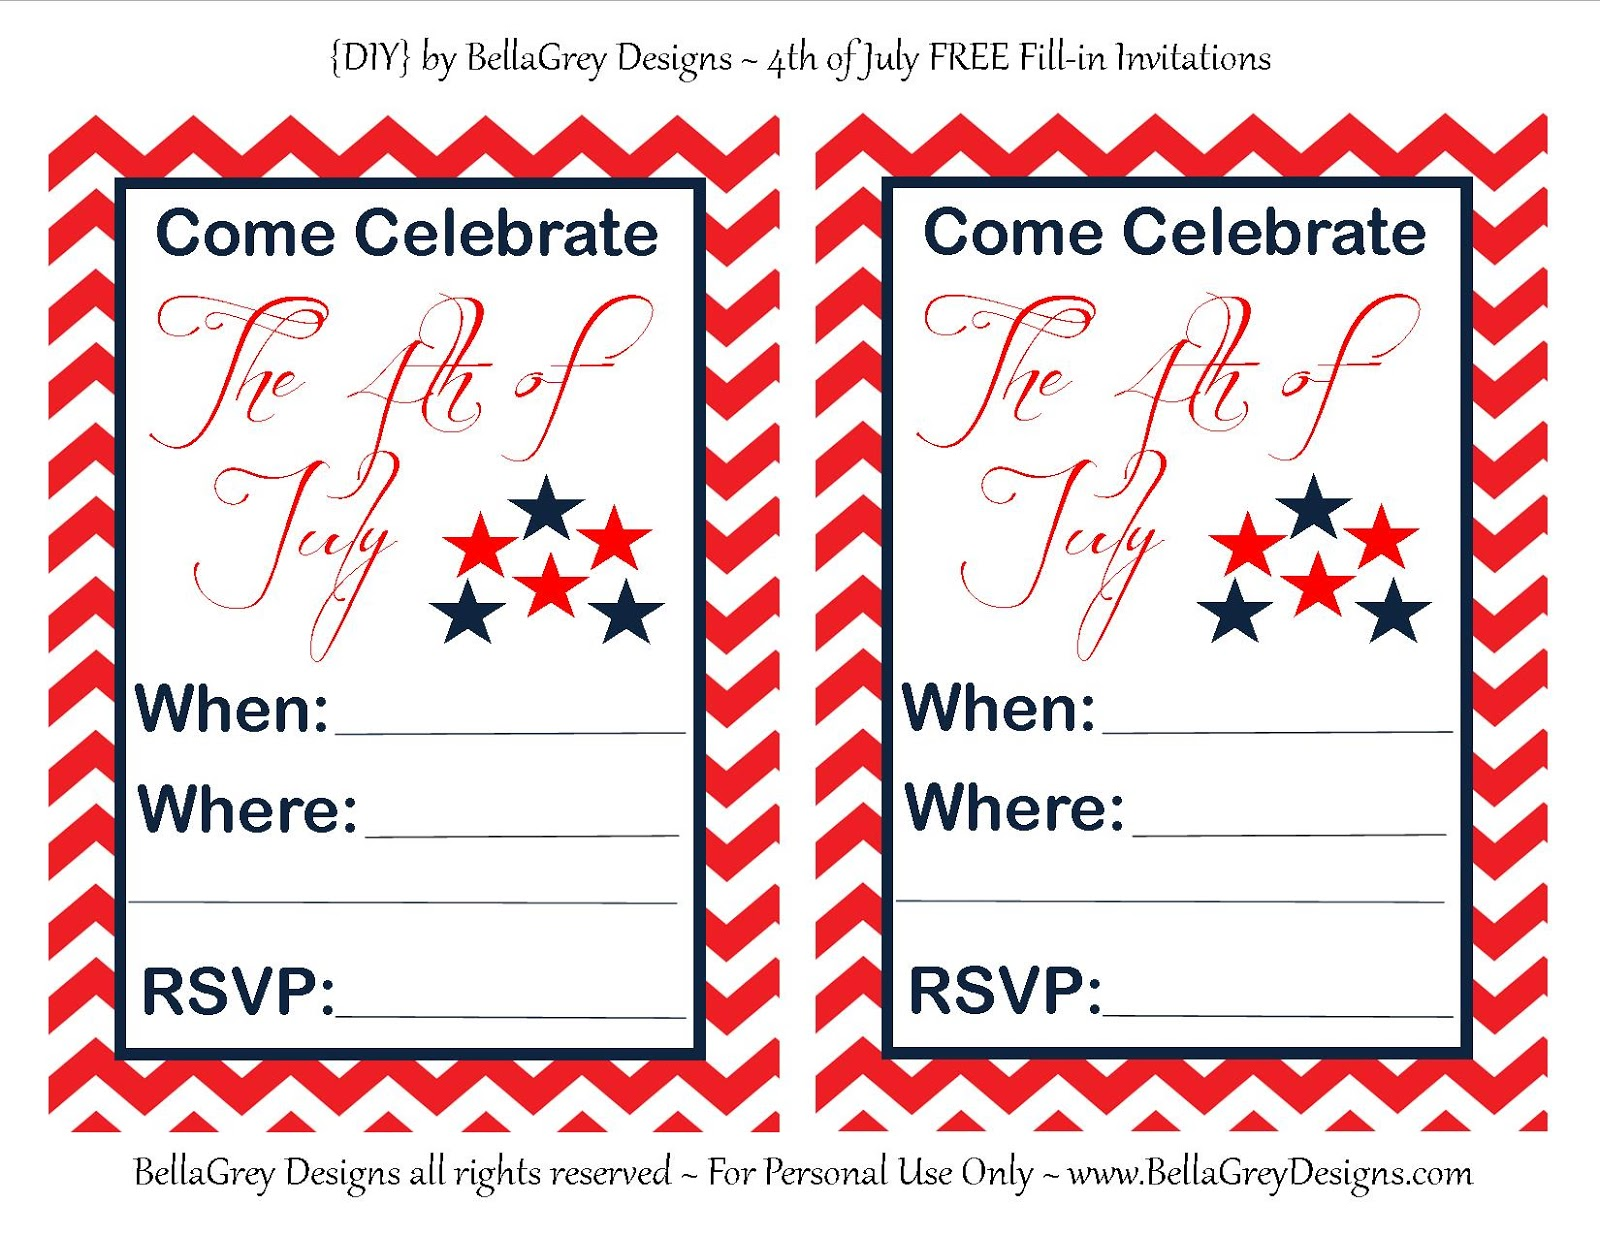 Print Birthday Invitations Online Christmas holiday greetings to clients